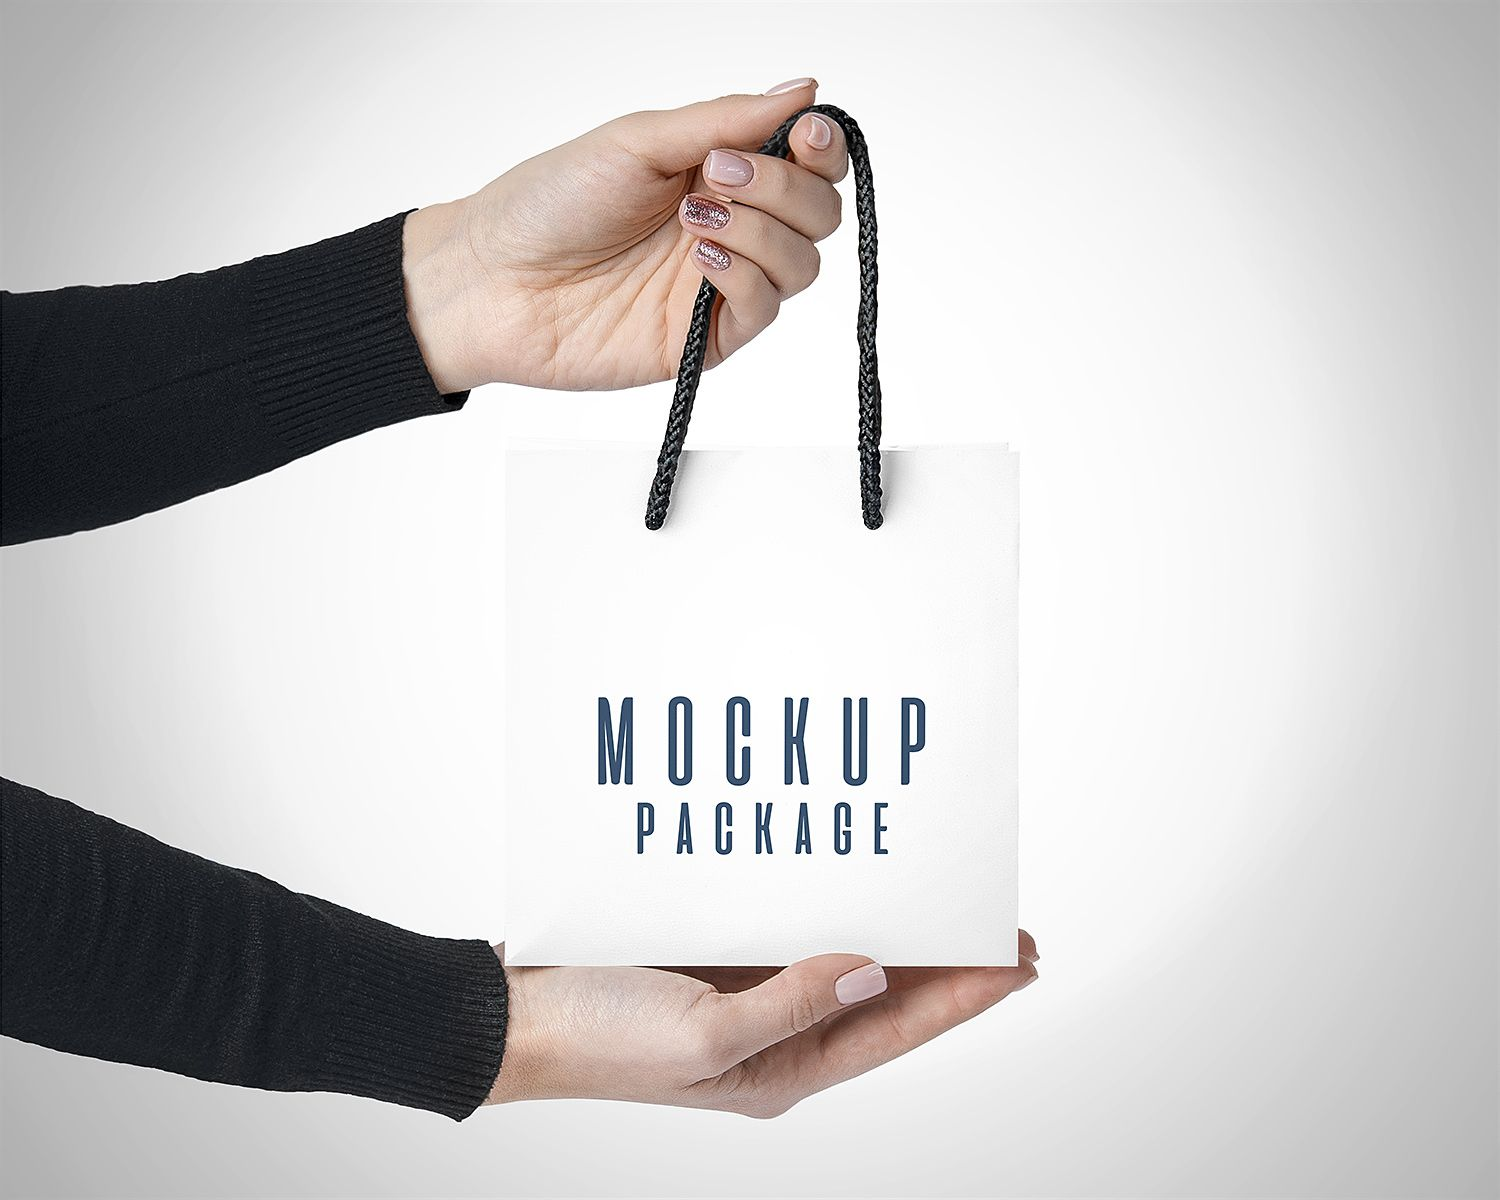 Download Gift Bags In Hands Free Mockup Free Mockup Mockup Free Psd Free Mockup Gift Bags